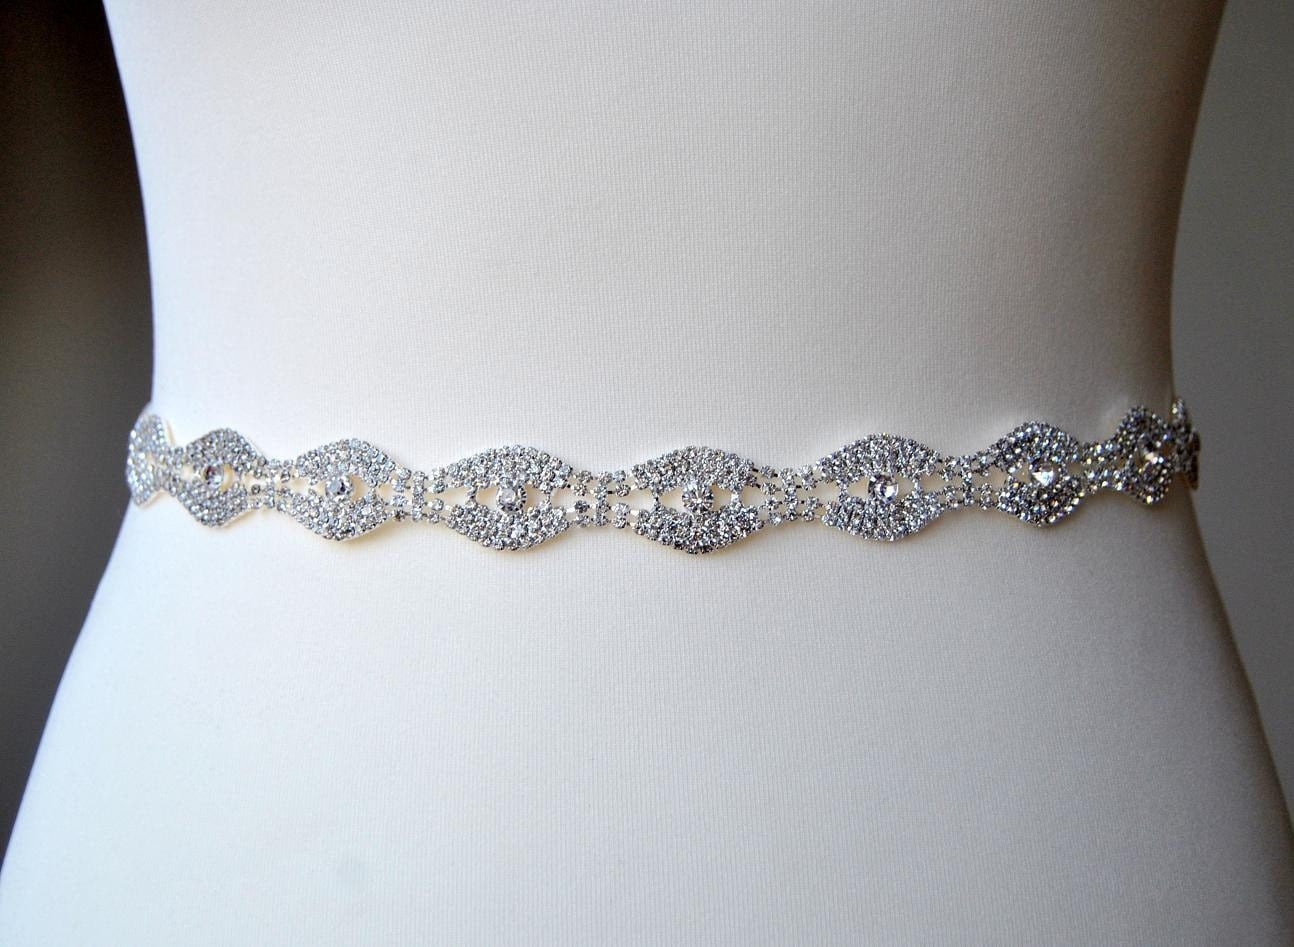 Dress sash belt wedding dress bridal sashwedding rhinestone for Rhinestone sash for wedding dress